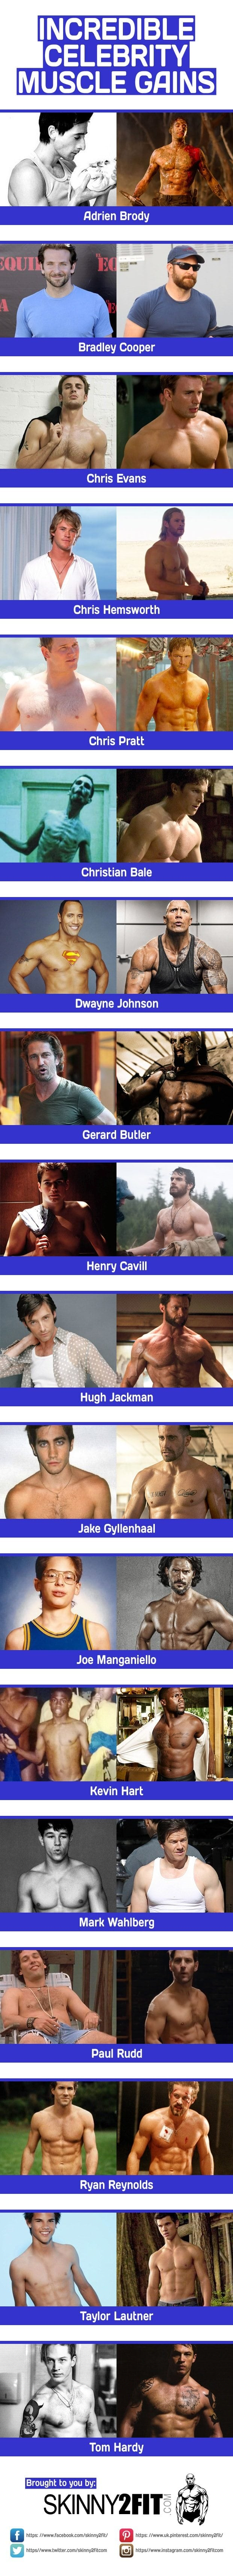 Celebrity Muscle Transformations